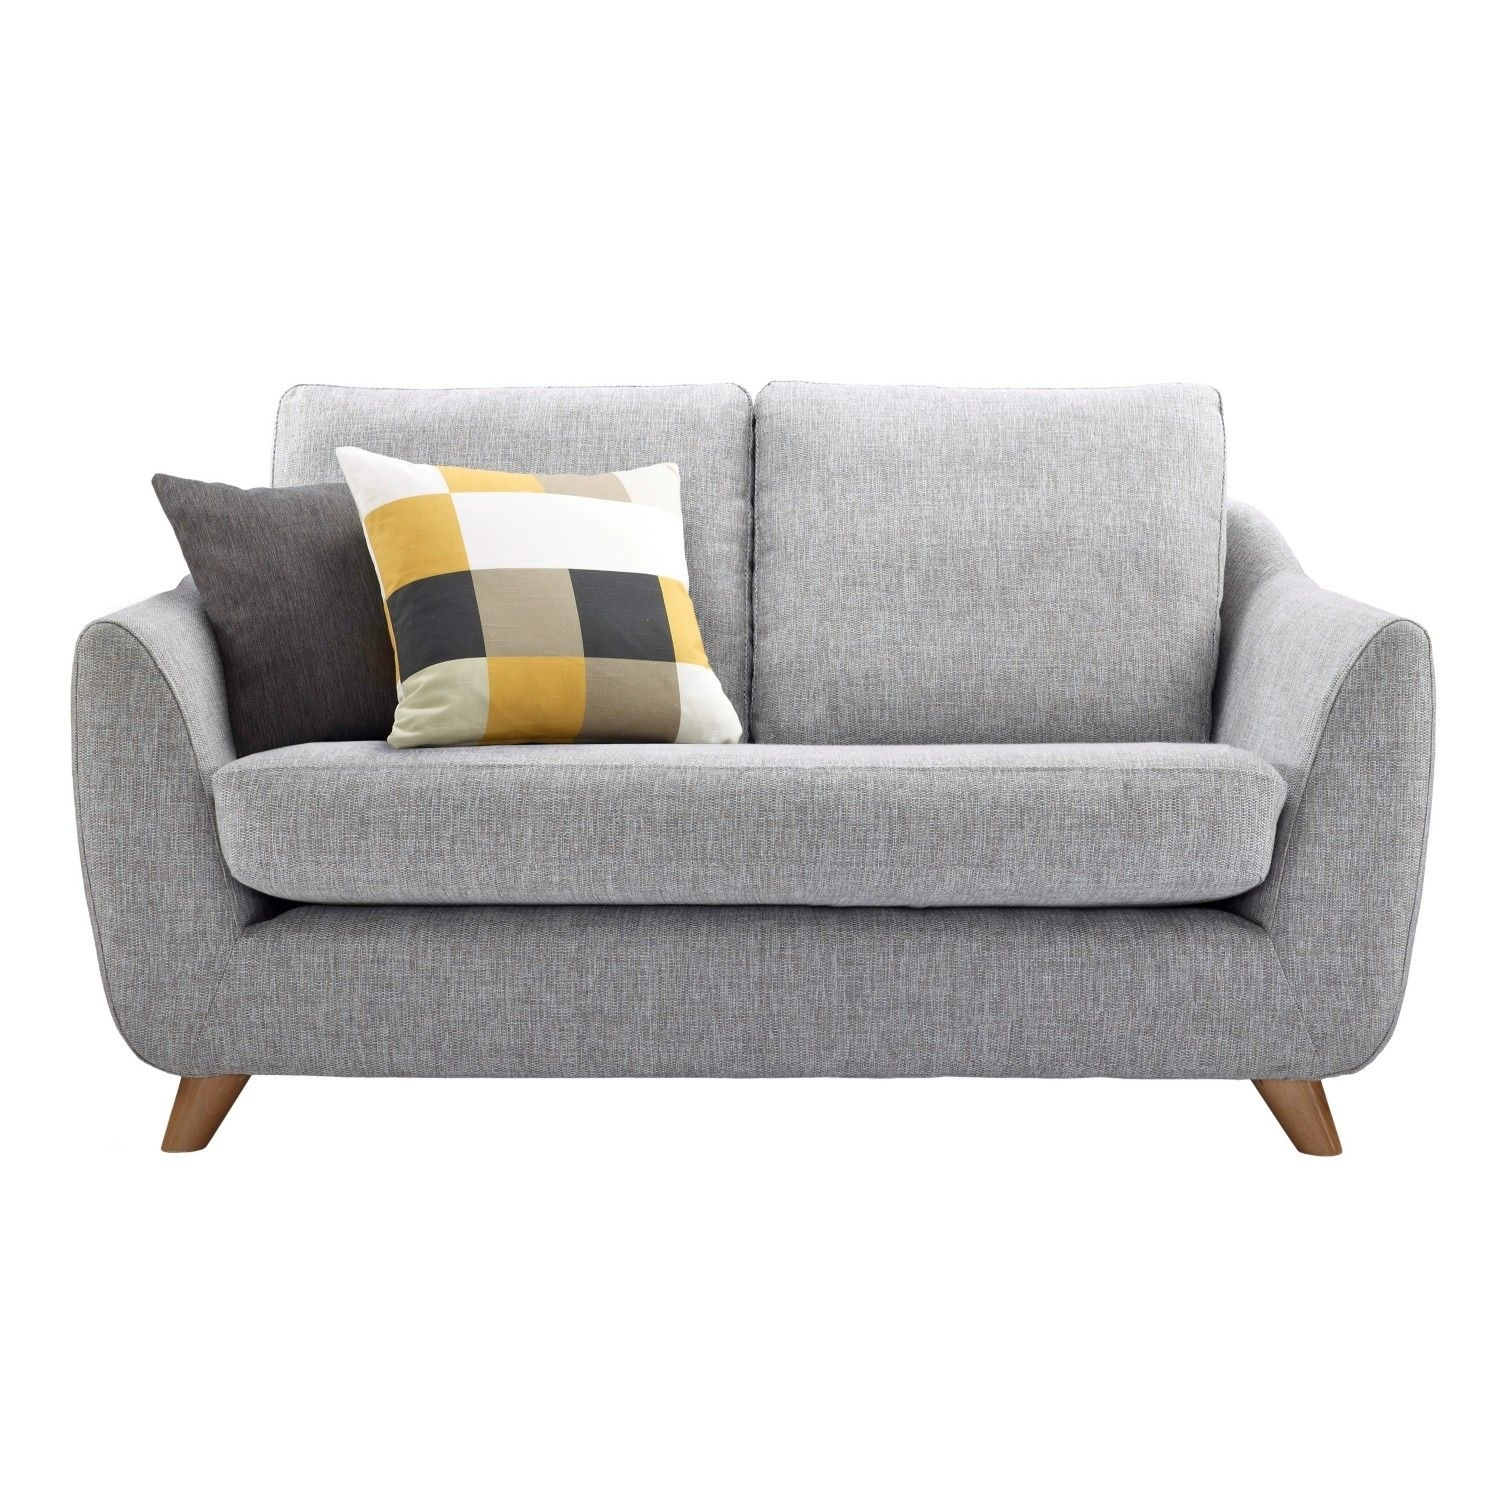 Loveseats For Small Spaces | Cheap Small Sofa Decoration in Mini Sofas (Image 5 of 10)